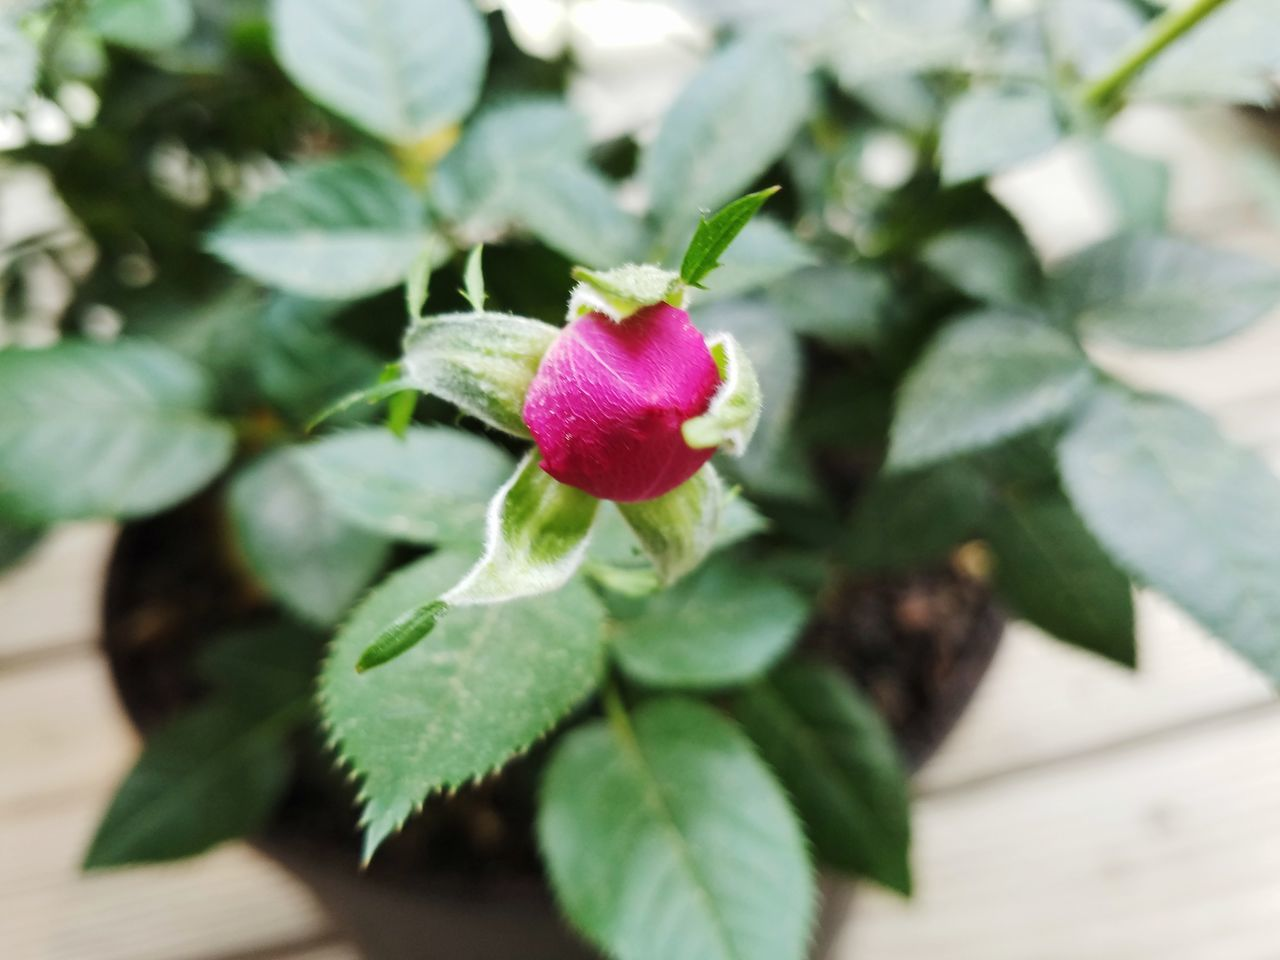 Nature No People Rose🌹 Rosebud Small Red Reddishpink Outdoors Beauty In Nature MYS7EDGEPHOTOS